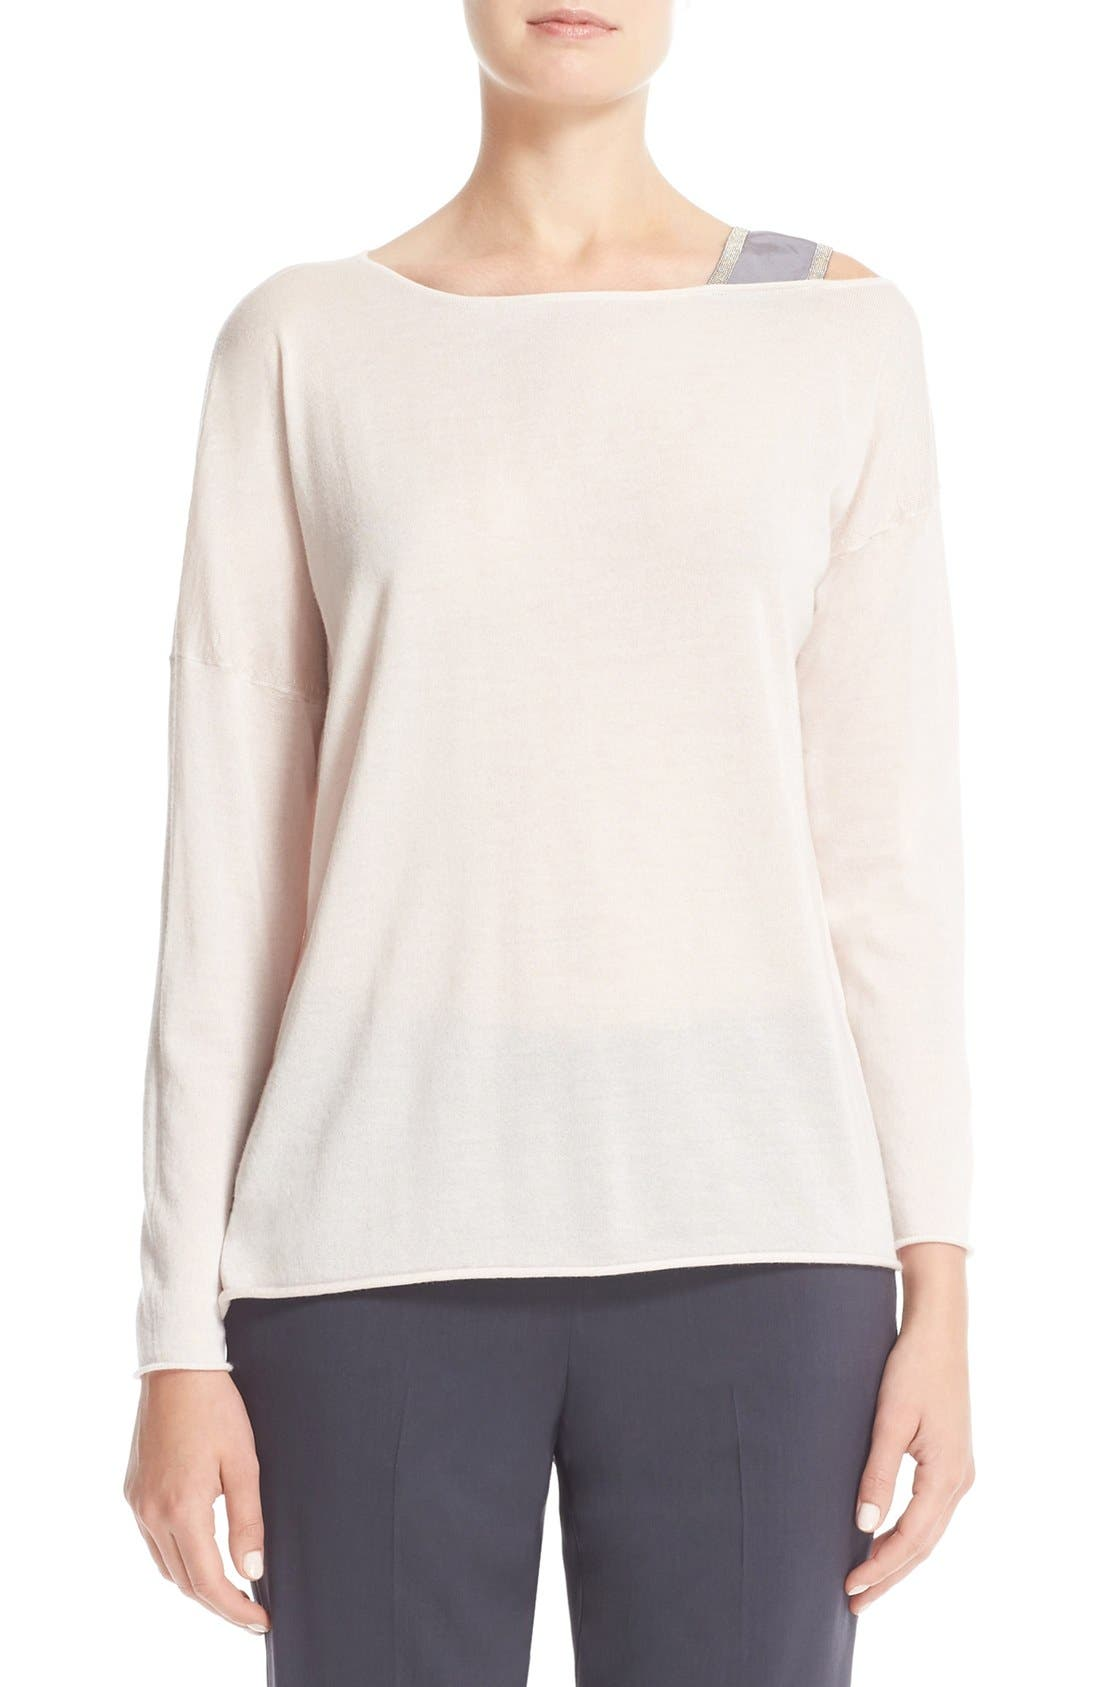 FABIANA FILIPPI Beaded Cashmere & Silk Sweater